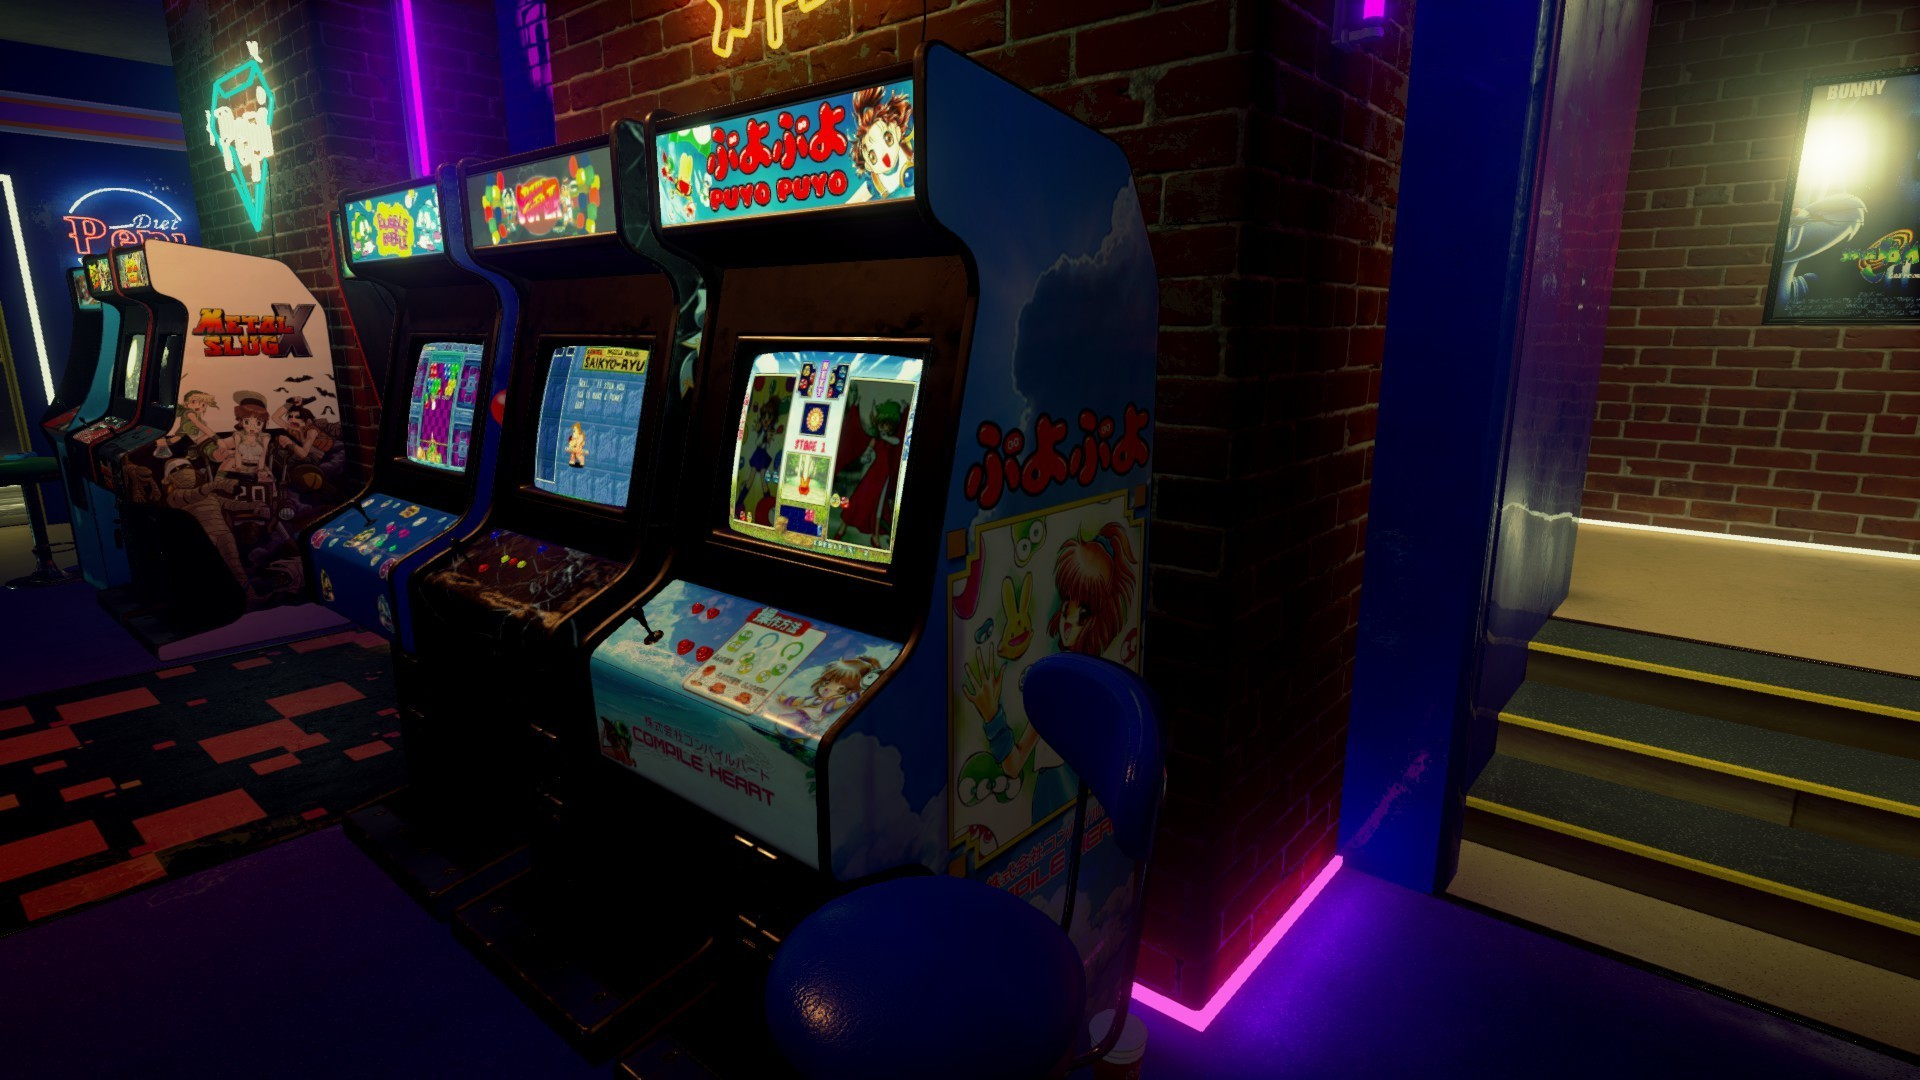 Res: 1920x1080, I'm never going to find Puyo Puyo Sun cabinet art, but I can